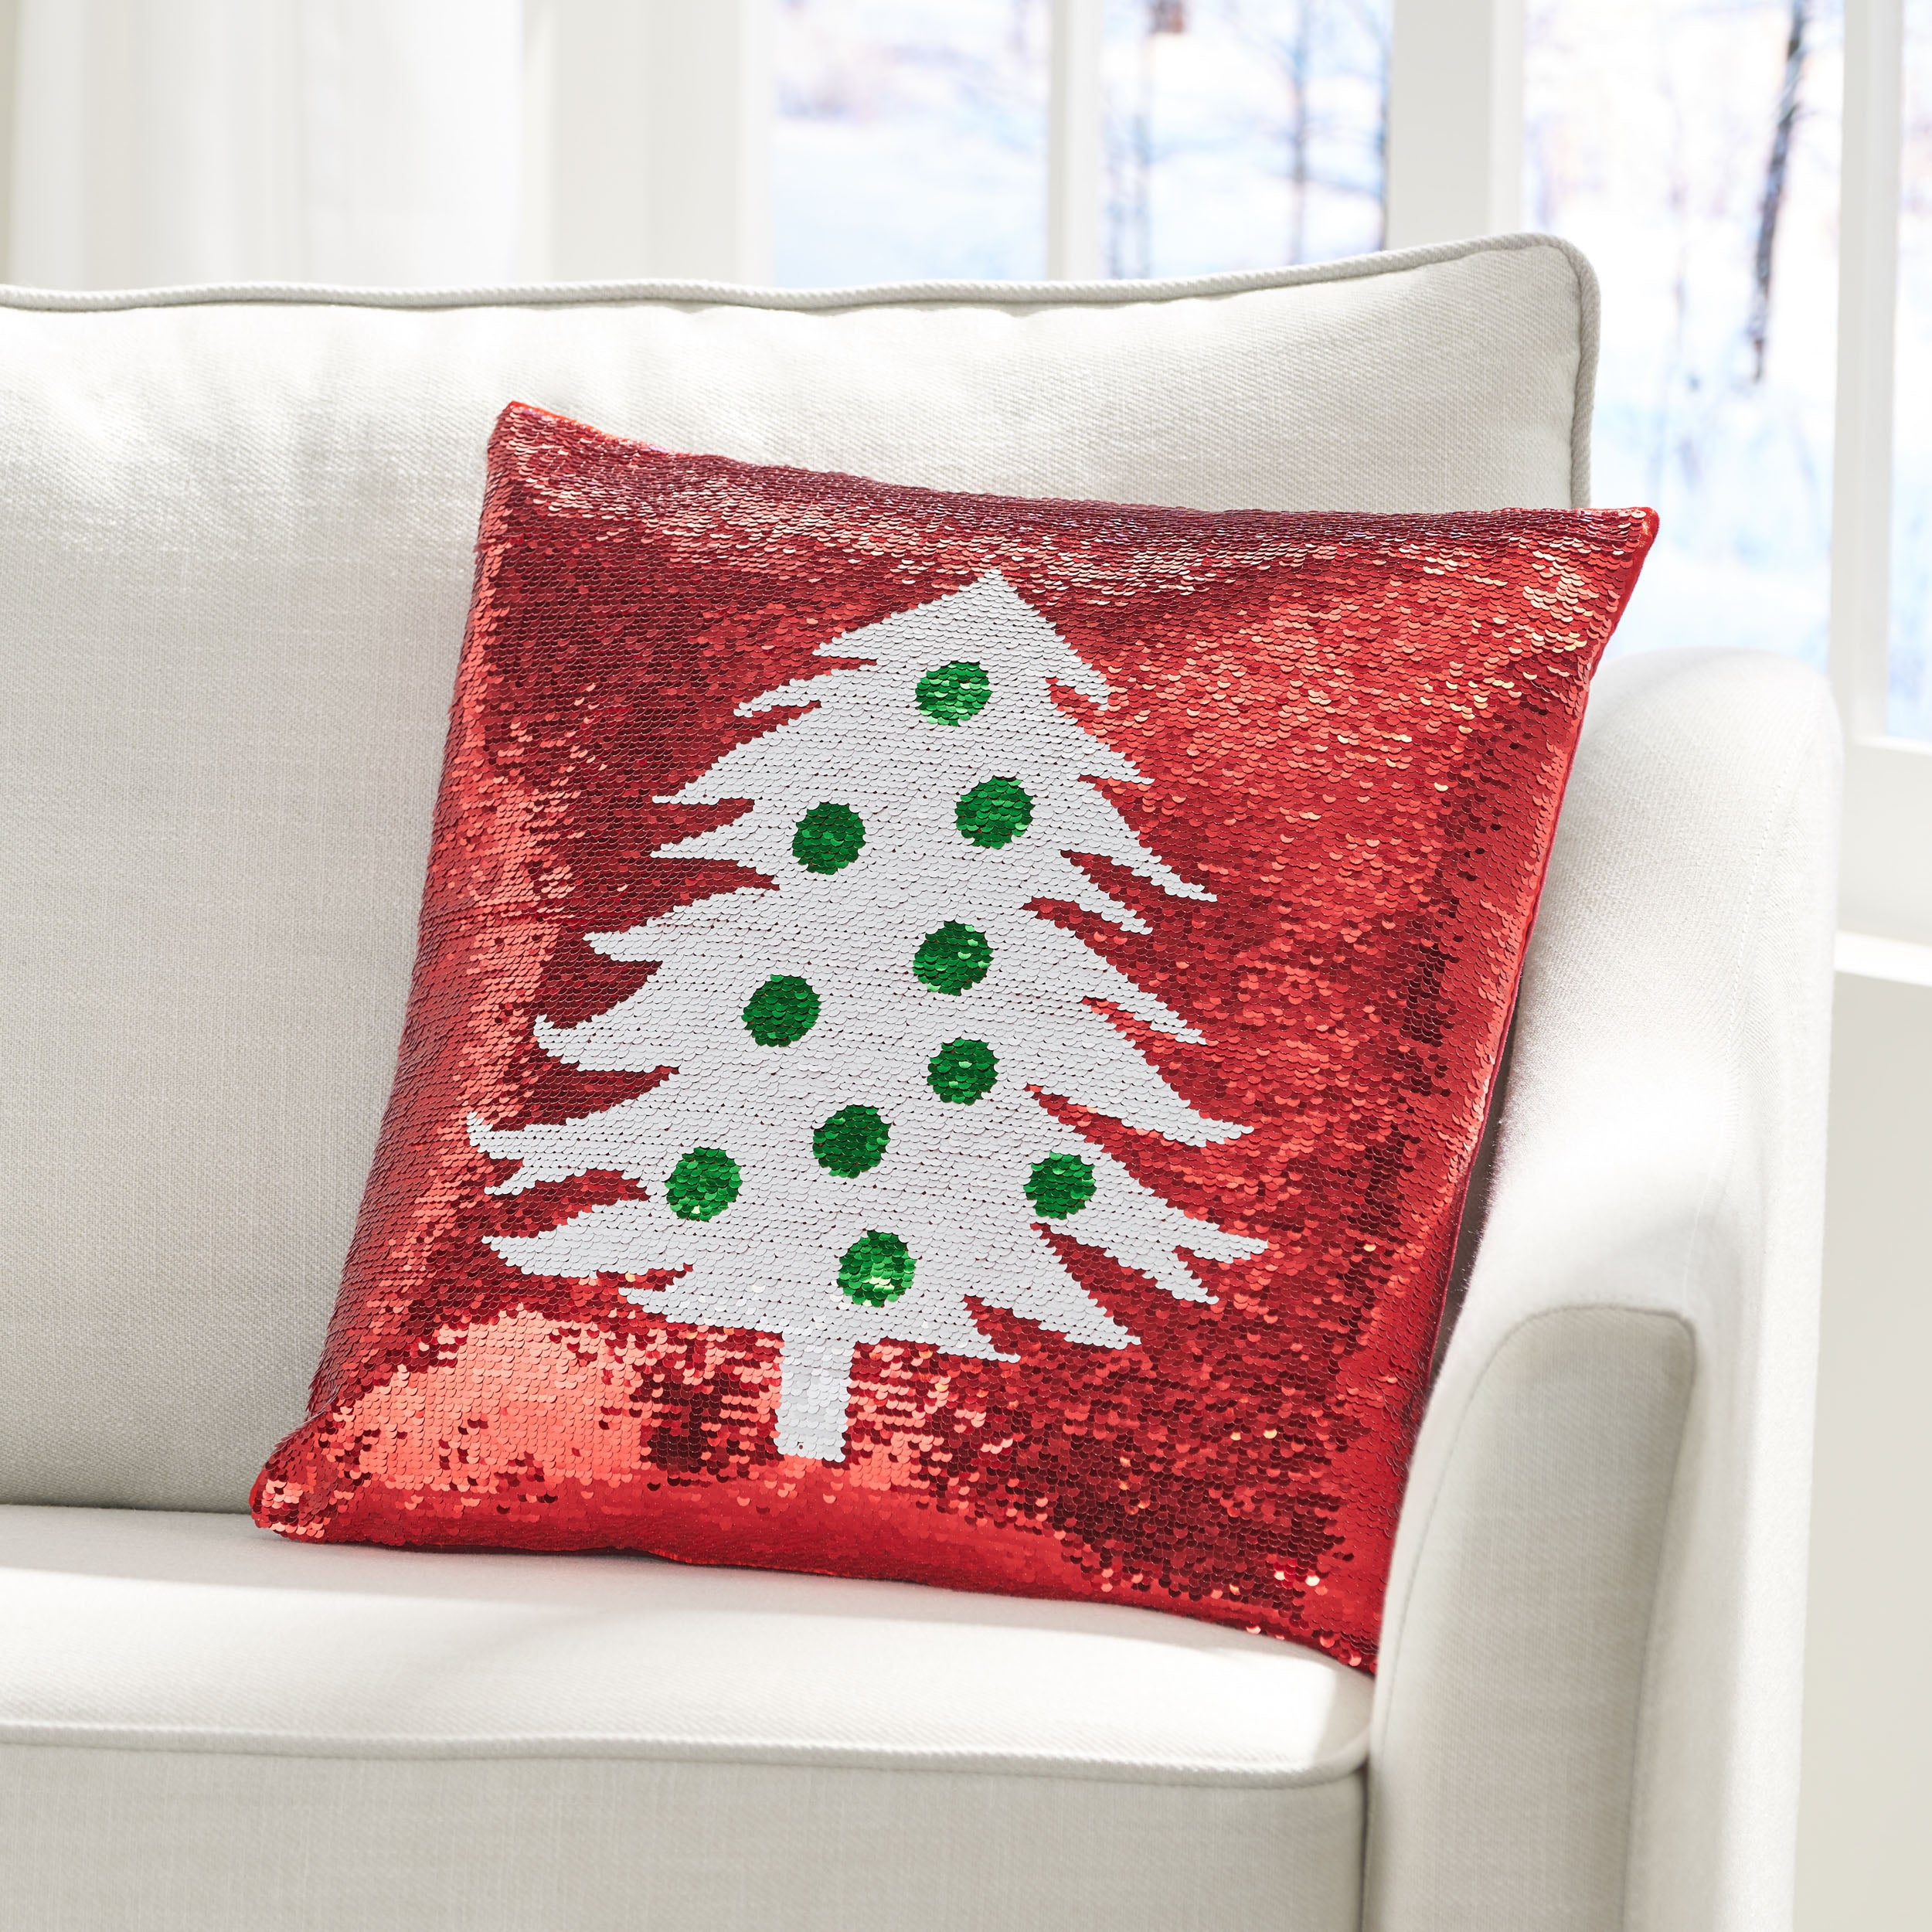 Romious Glam Sequin Christmas Throw Pillow Cover Gdfstudio